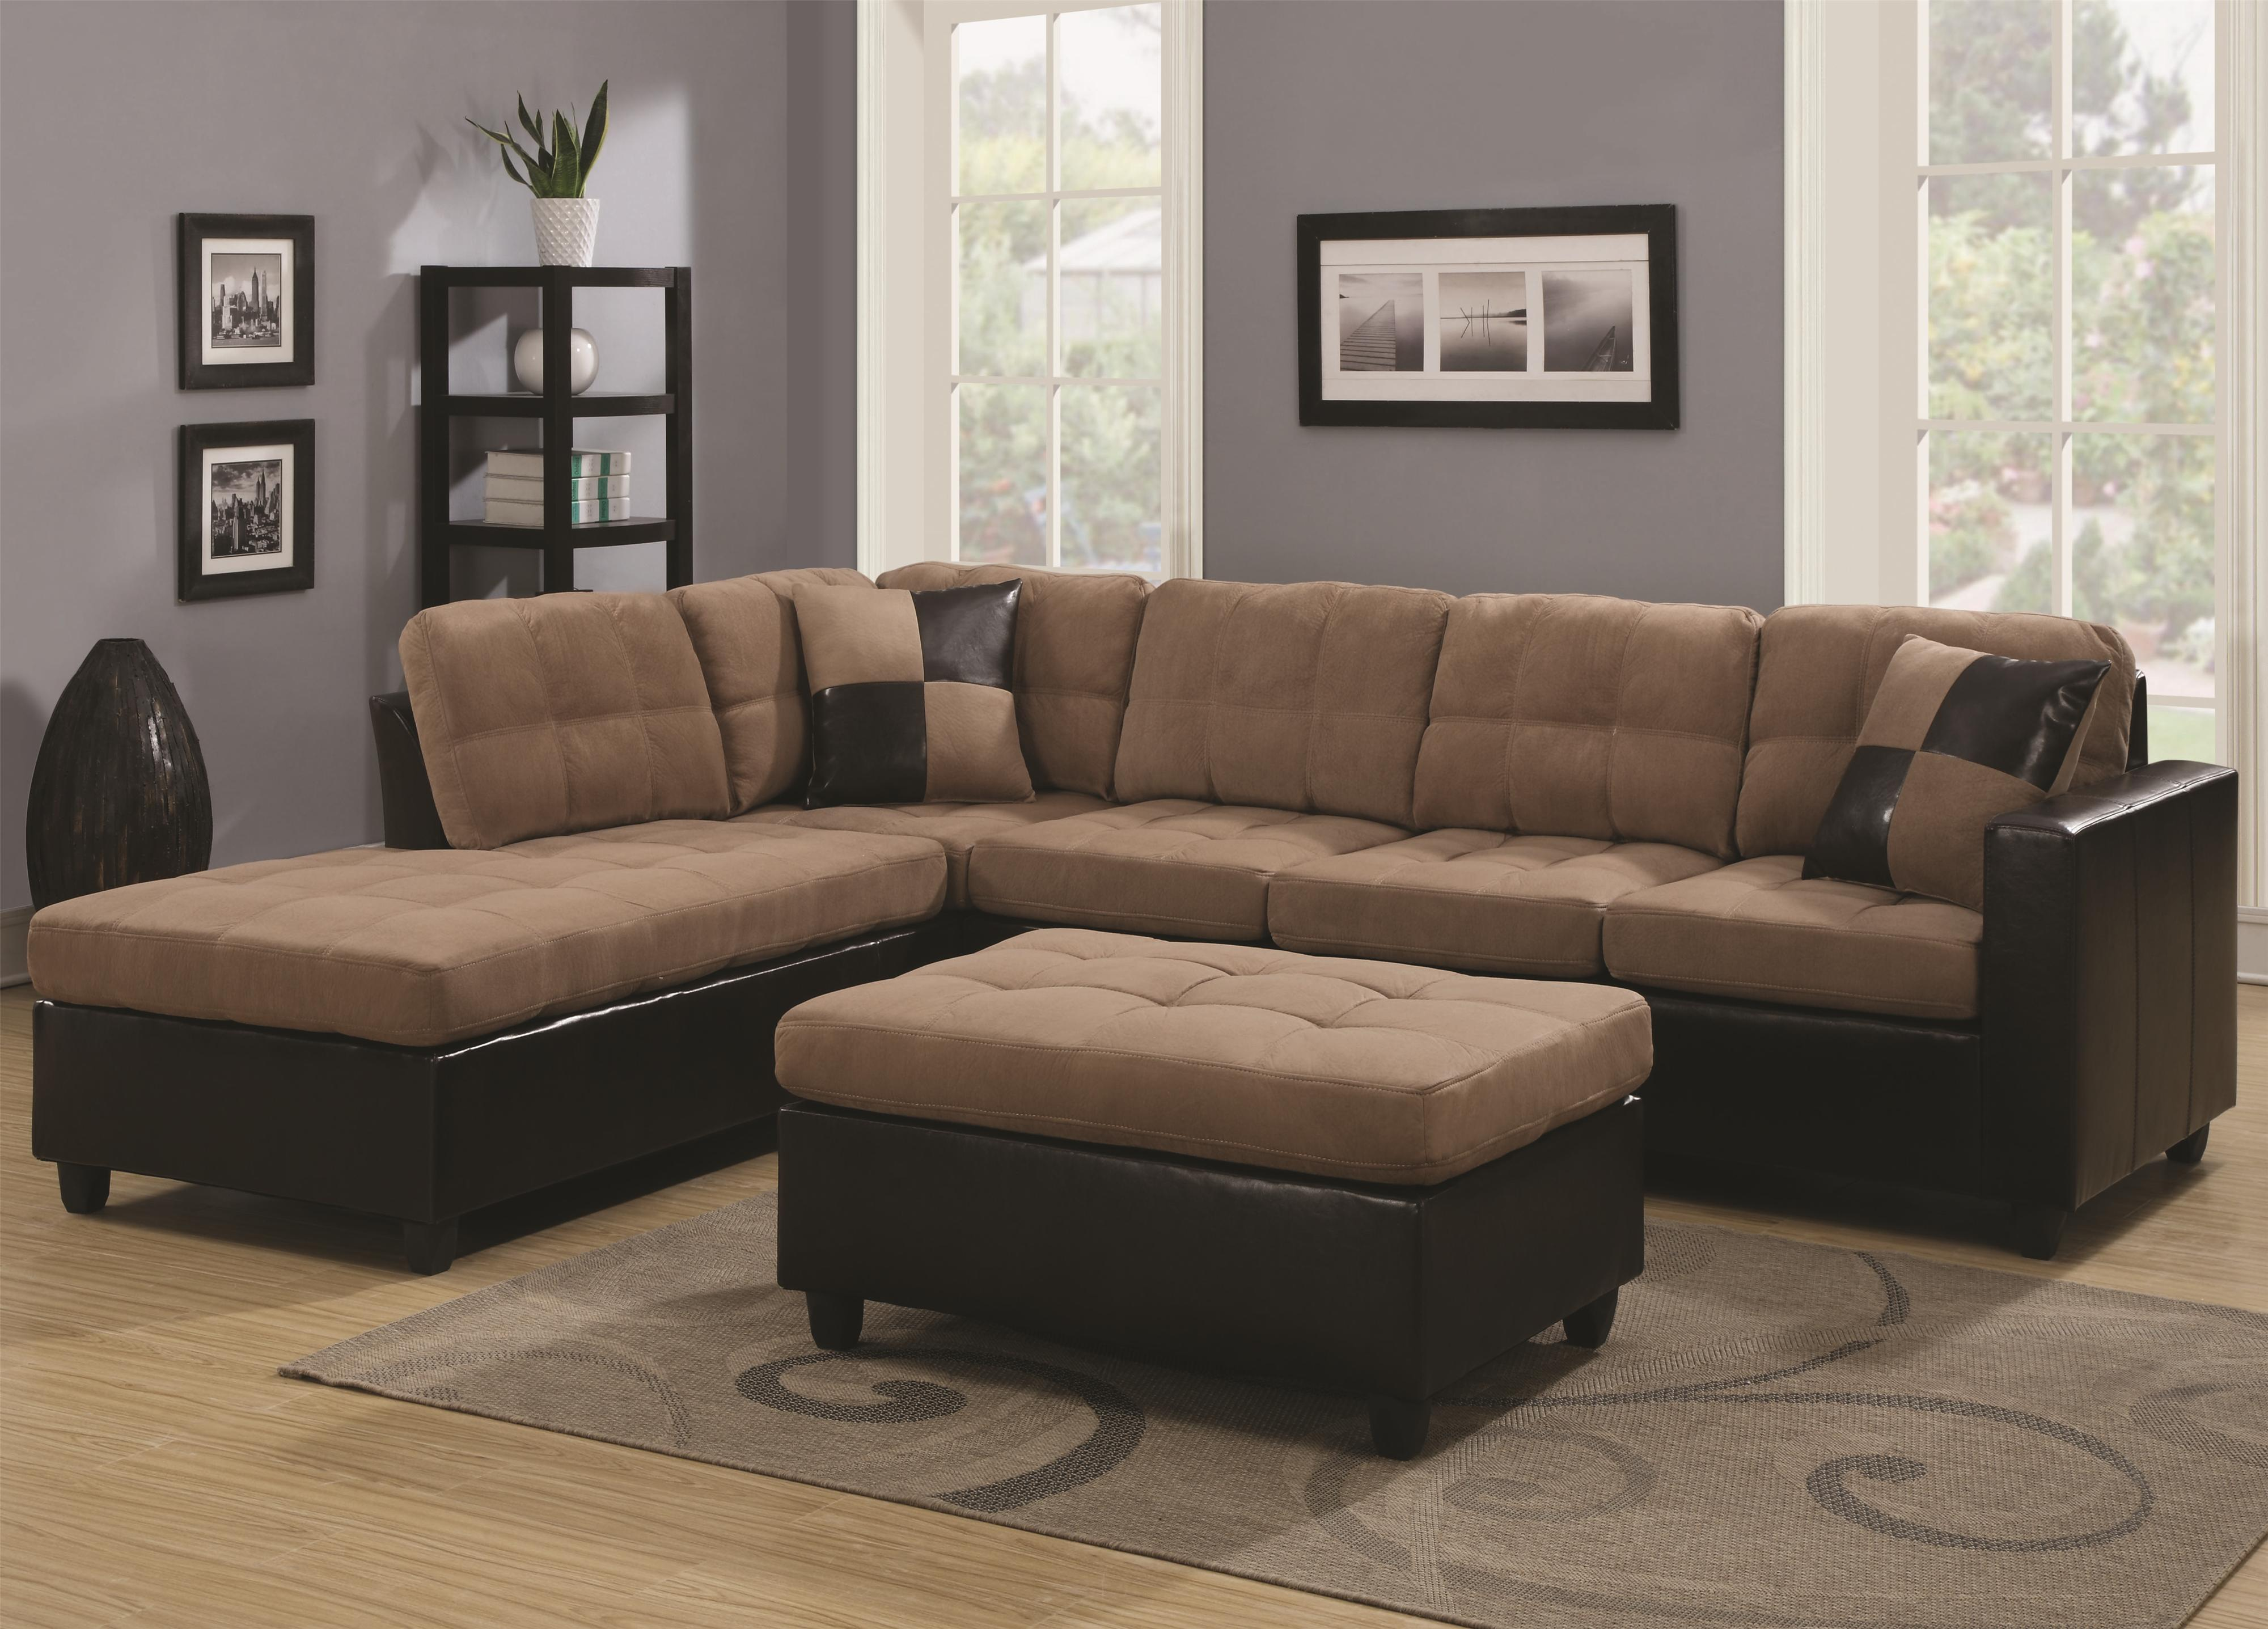 Stationary Living Room Group By Coaster Wolf And Gardiner Wolf Furniture